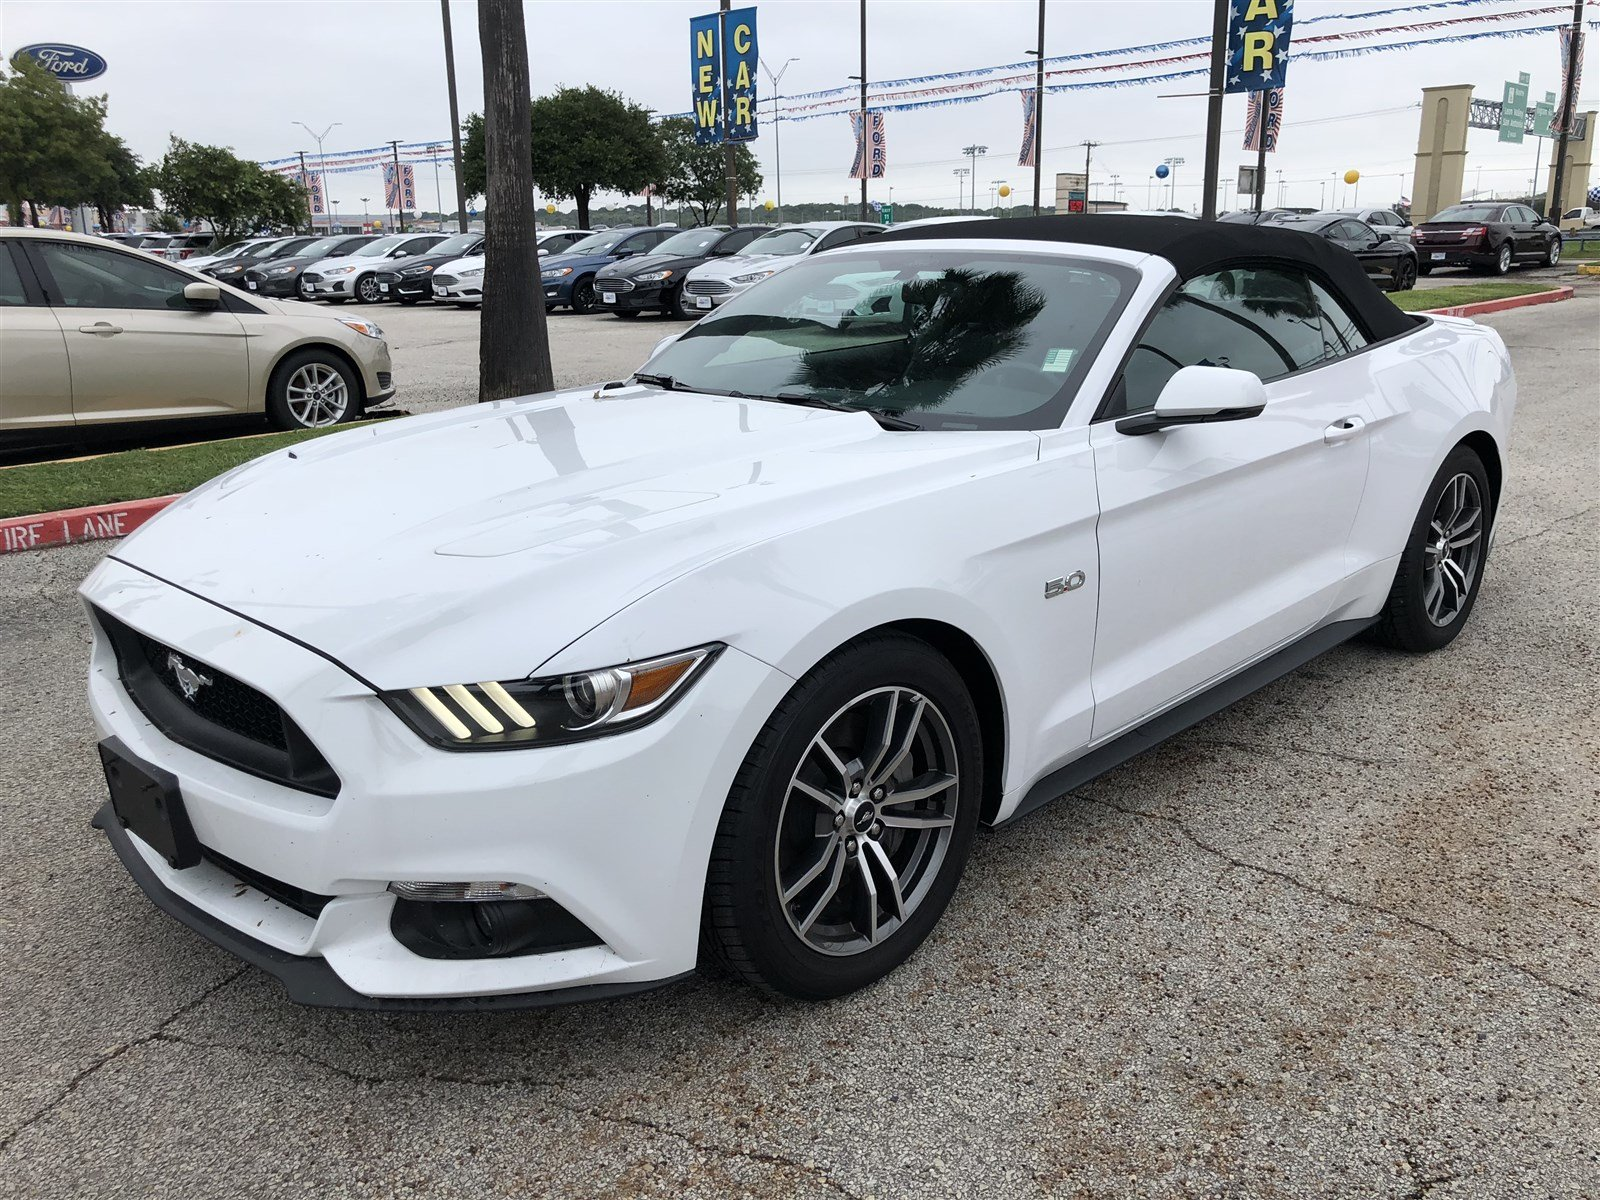 Certified Pre Owned 2017 Ford Mustang GT Premium Convertible in San